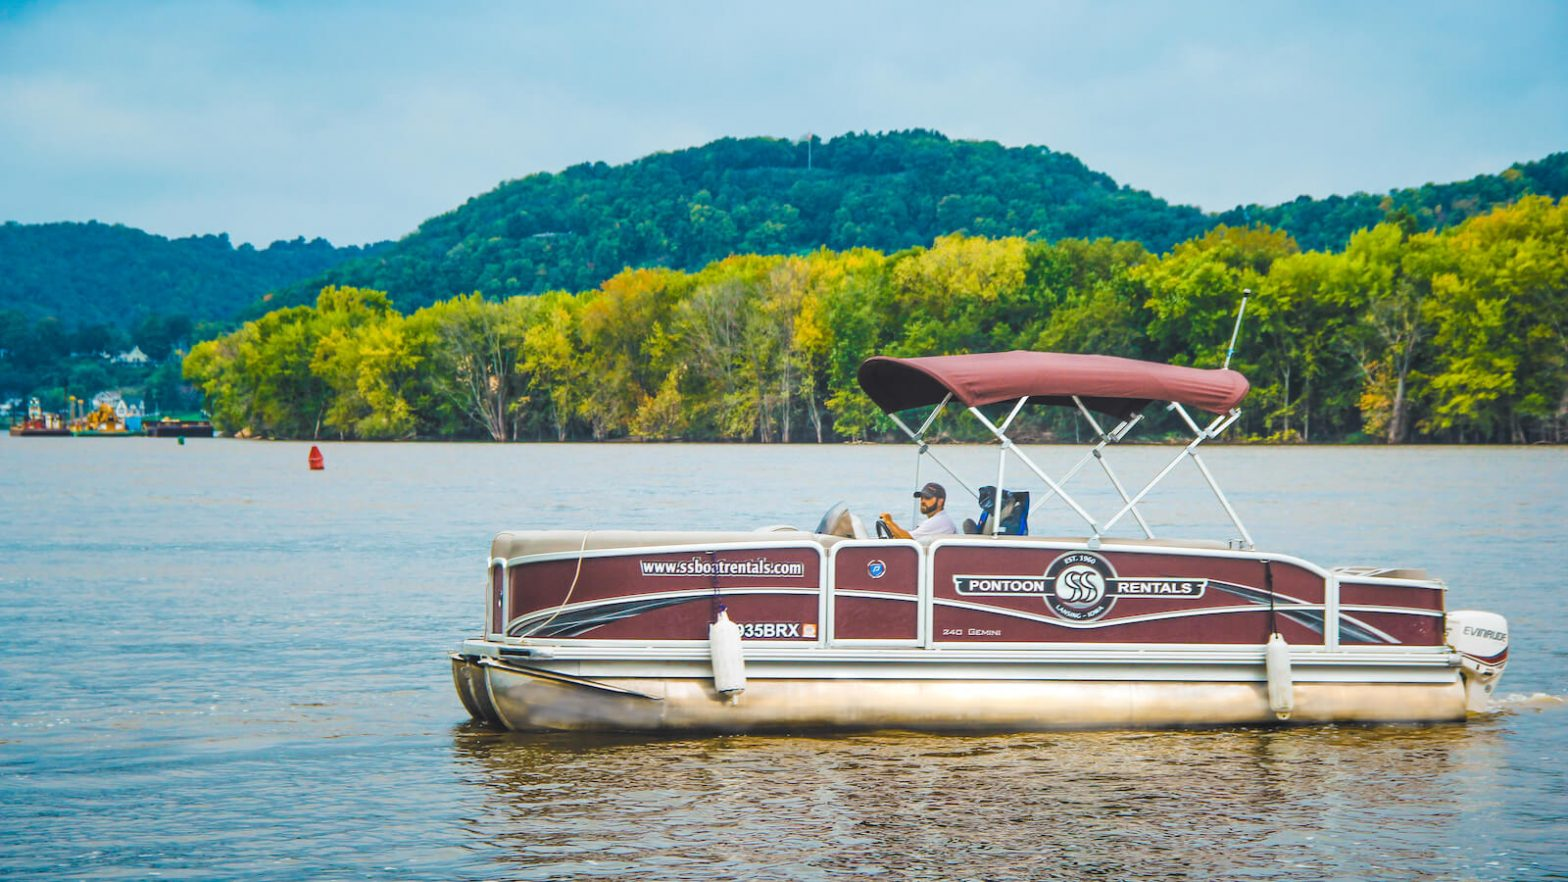 S&S Boats Pontoon Rental in the Mississippi River